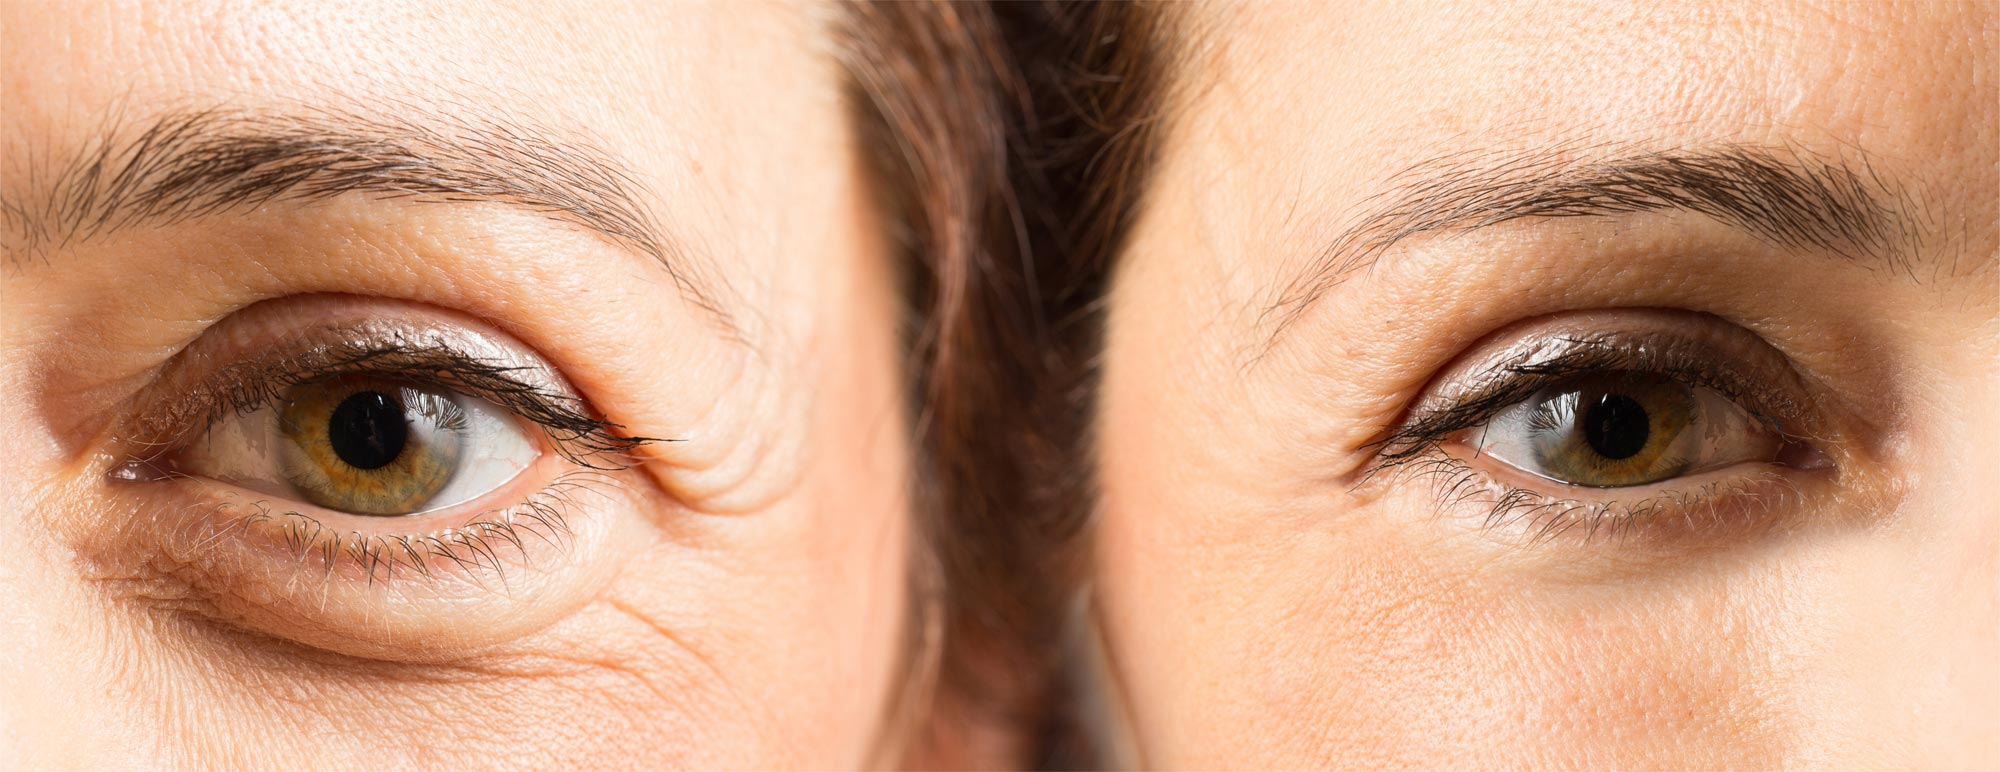 crow's feet lines, anti-wrinkle injections